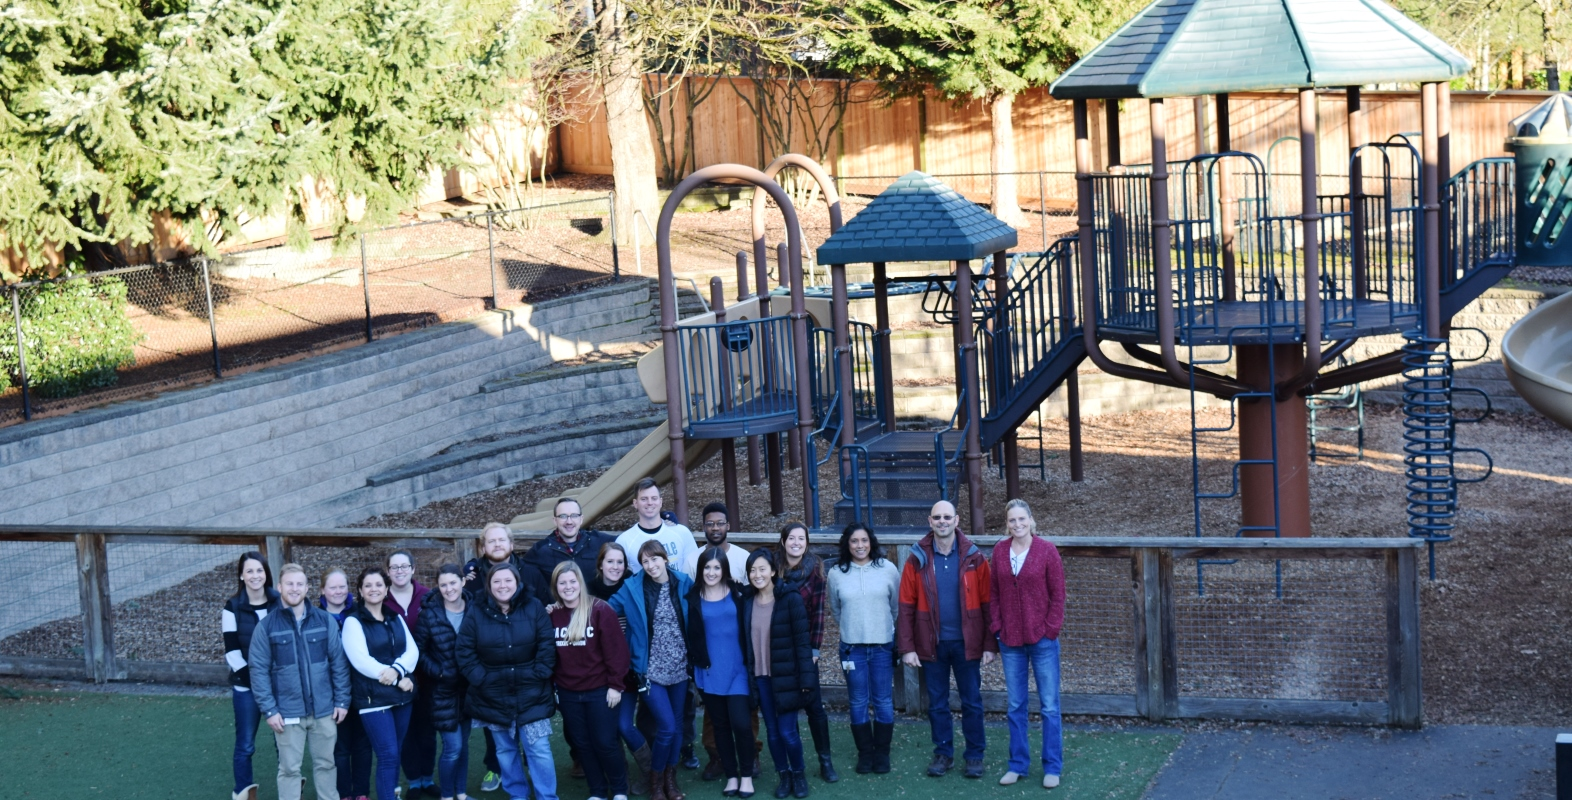 Specialty School staff pose on playground